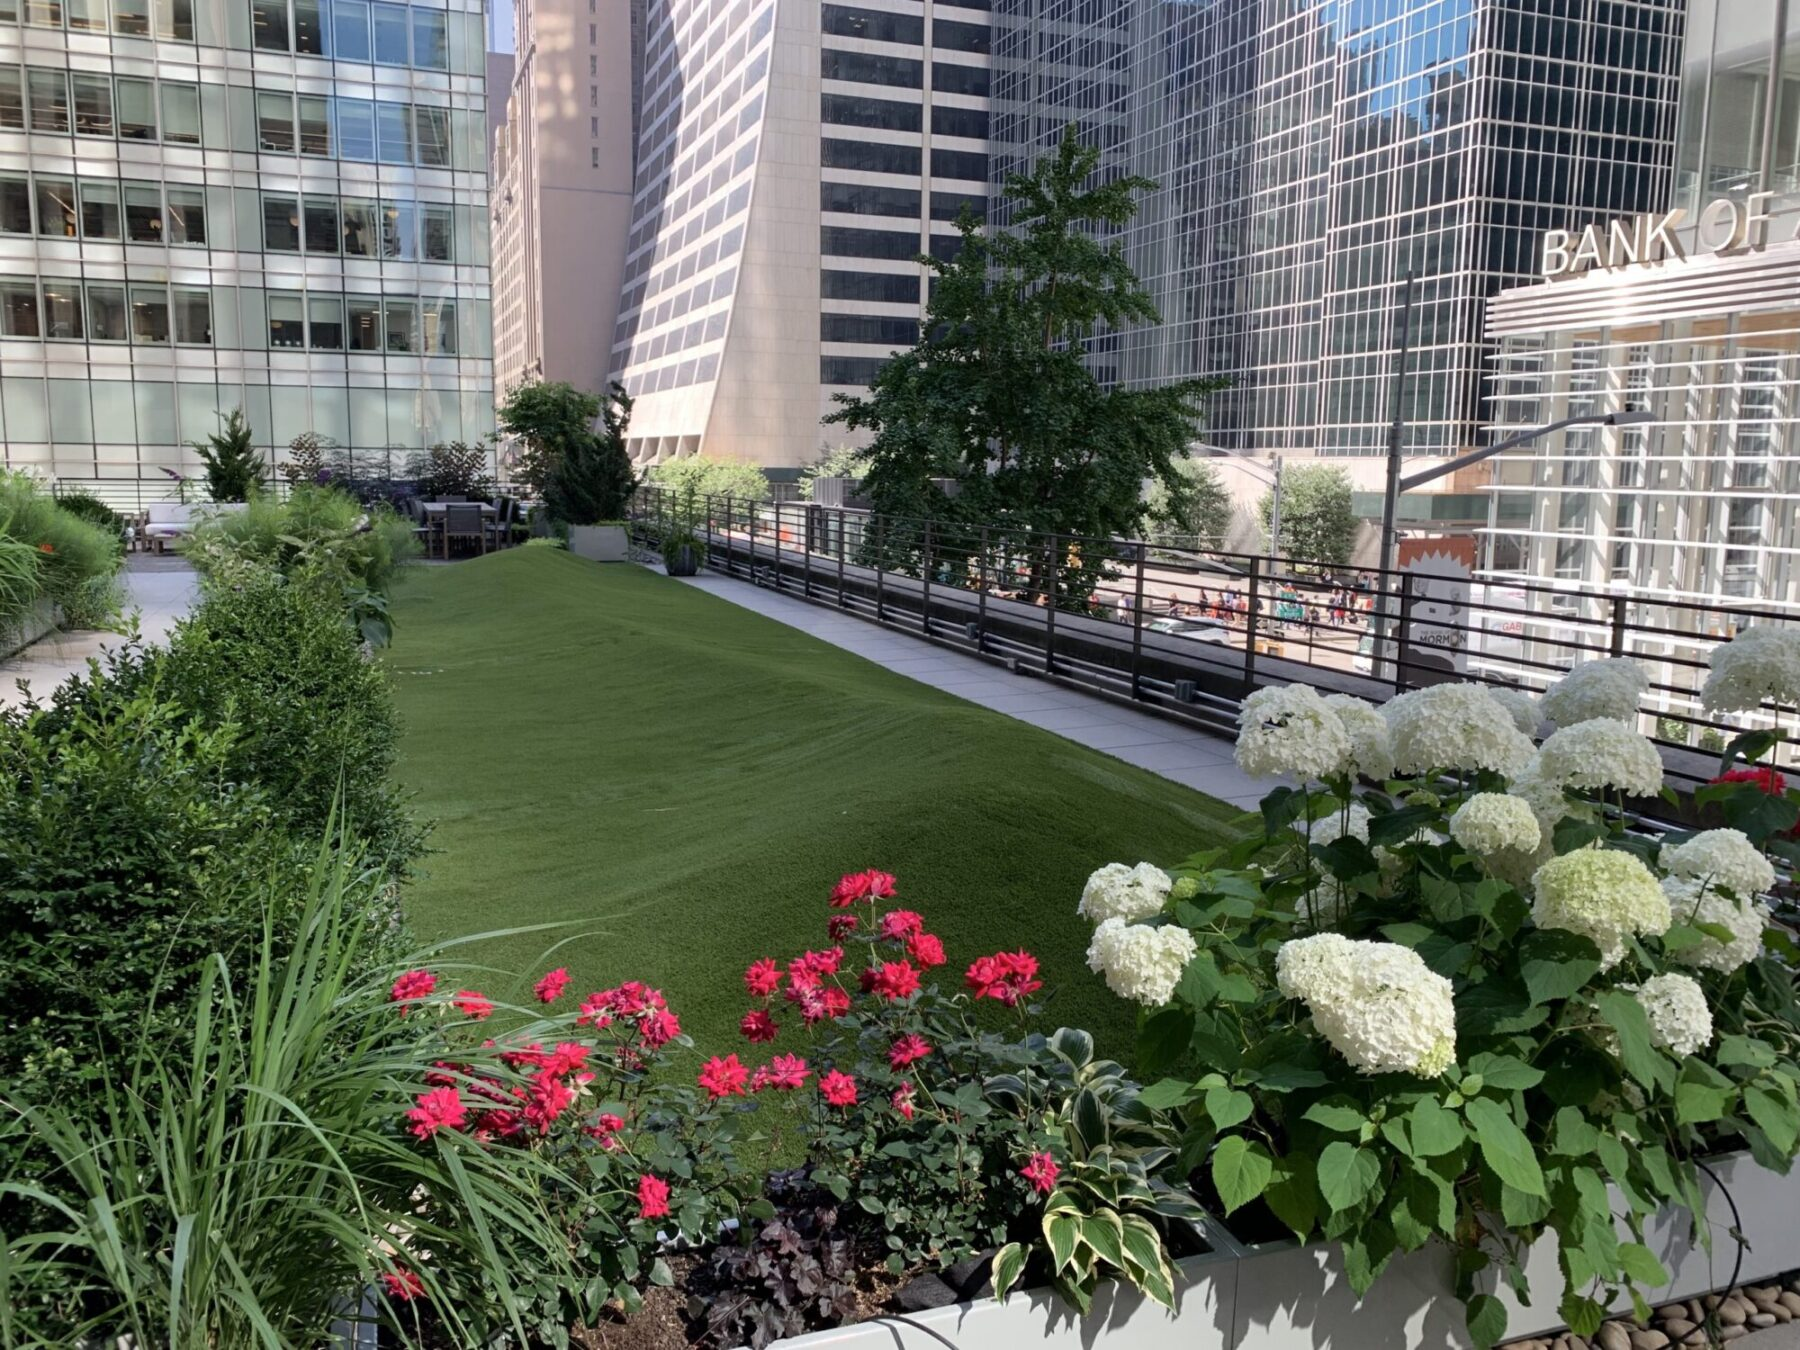 Commercial turf installation near me